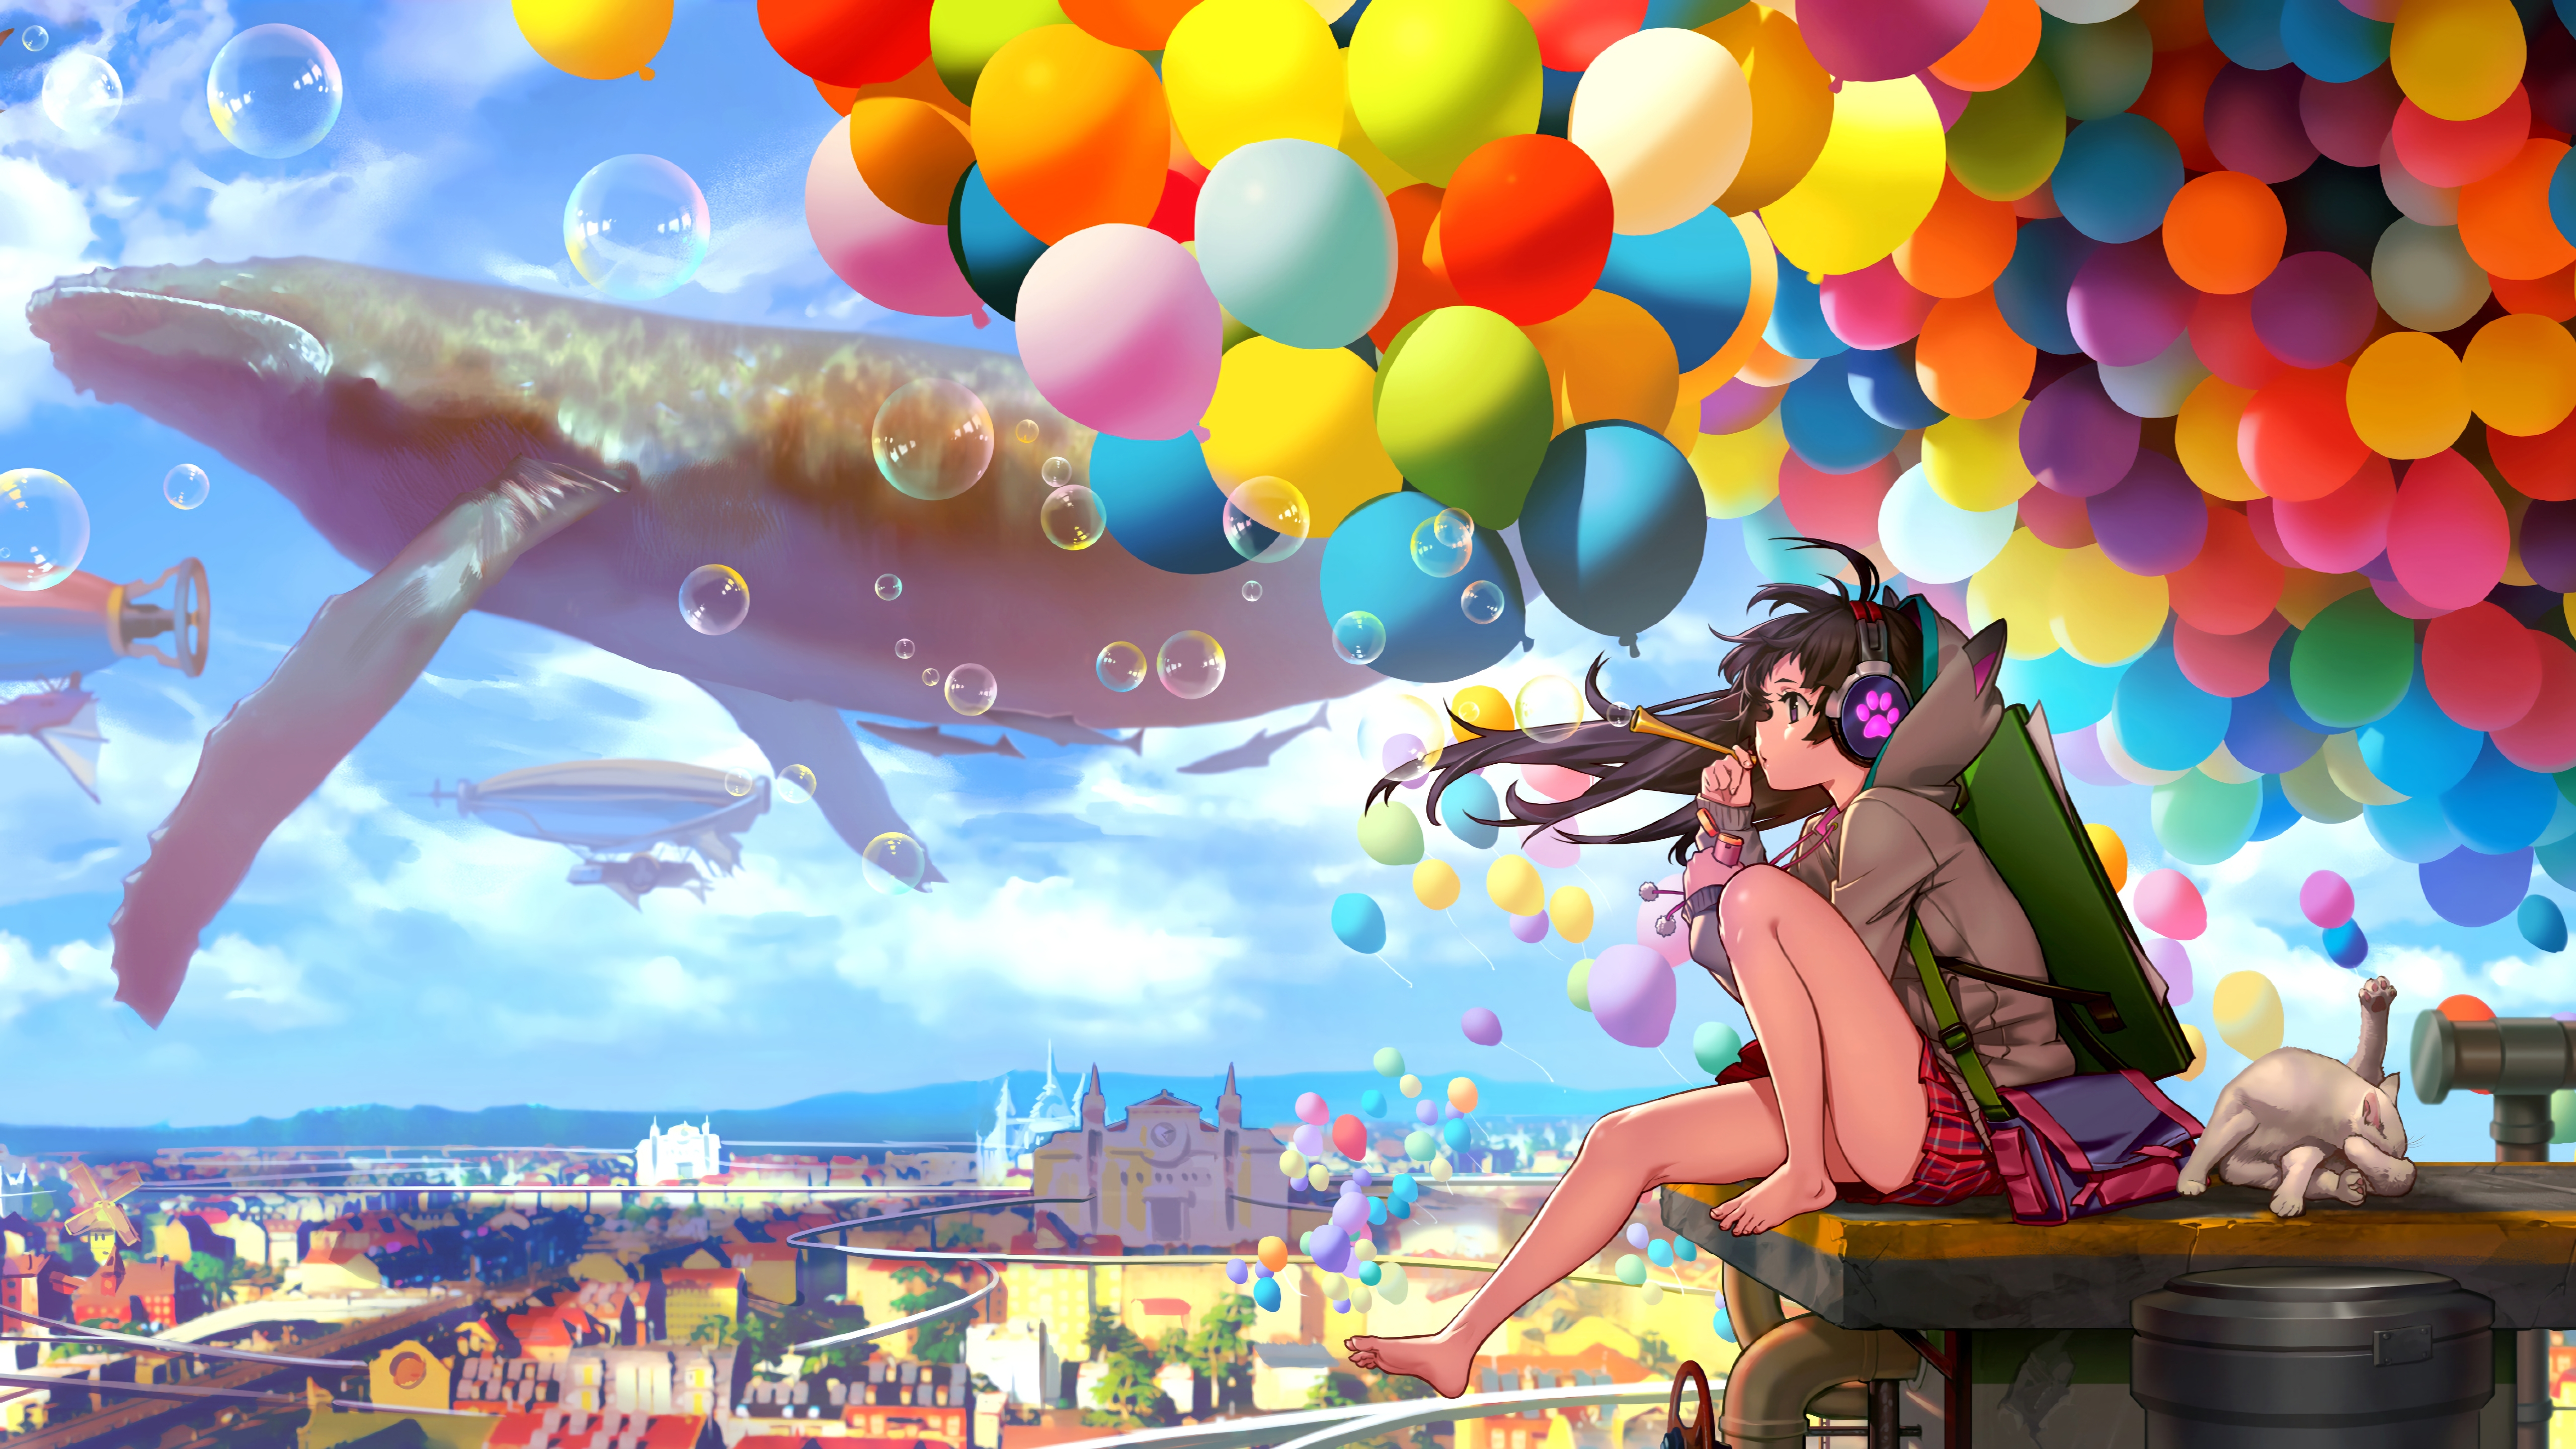 Colorful City Anime Girl Blowing Bubbles, HD Anime, 4k ...